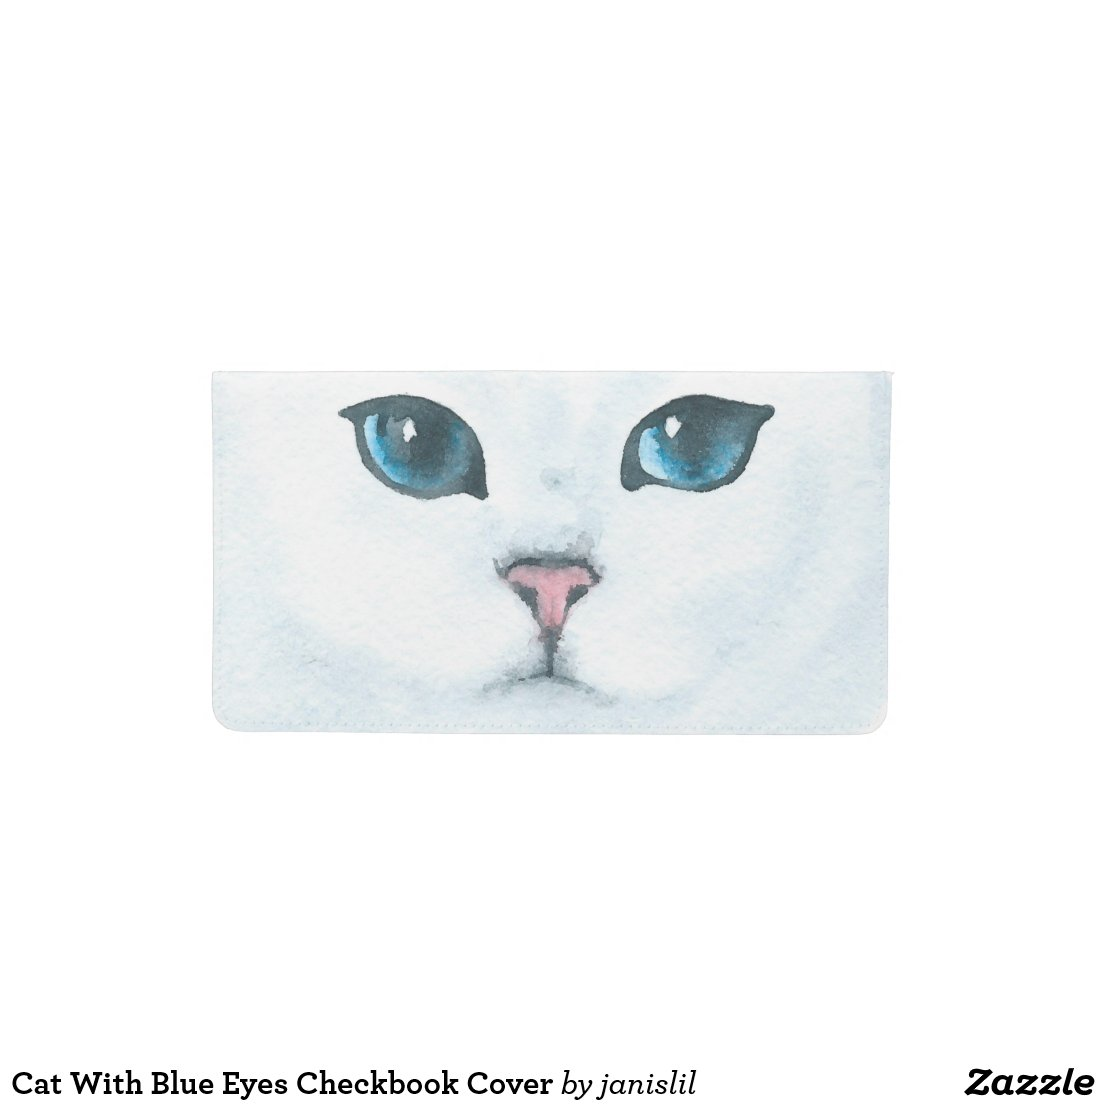 Cat With Blue Eyes Checkbook Cover